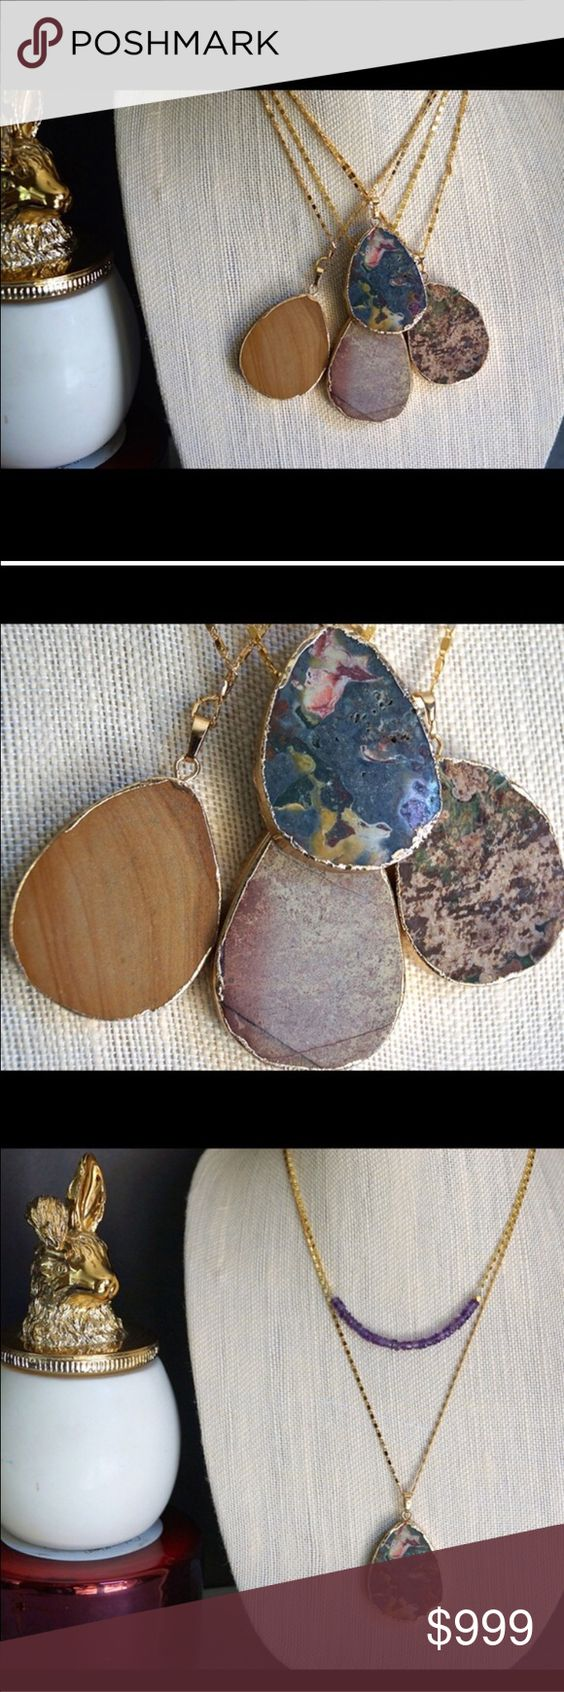 🎉Coming Soon🎉 Gold Jasper Pendant Necklaces Like this listing to be updated once available!! One of a kind - literally only 1 of each made - gorgeous Jasper and Gold pendant necklaces from Function & Fringe! I will have one of each as pictured. Function & Fringe Jewelry Necklaces